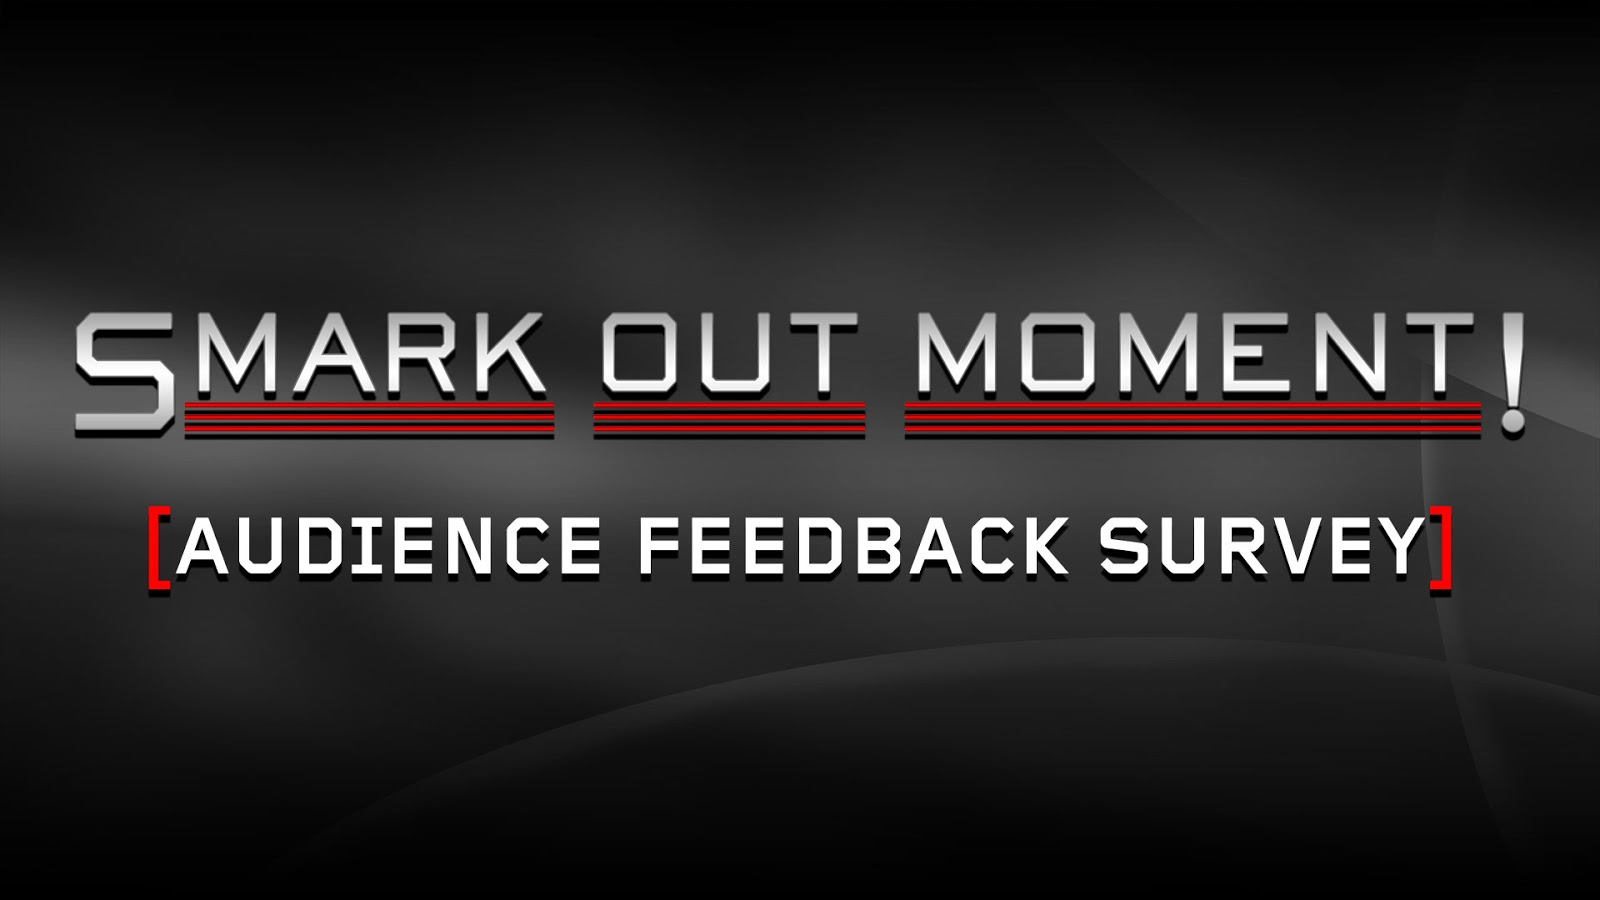 Smark Out Moment questionnaire Audience Feedback Survey